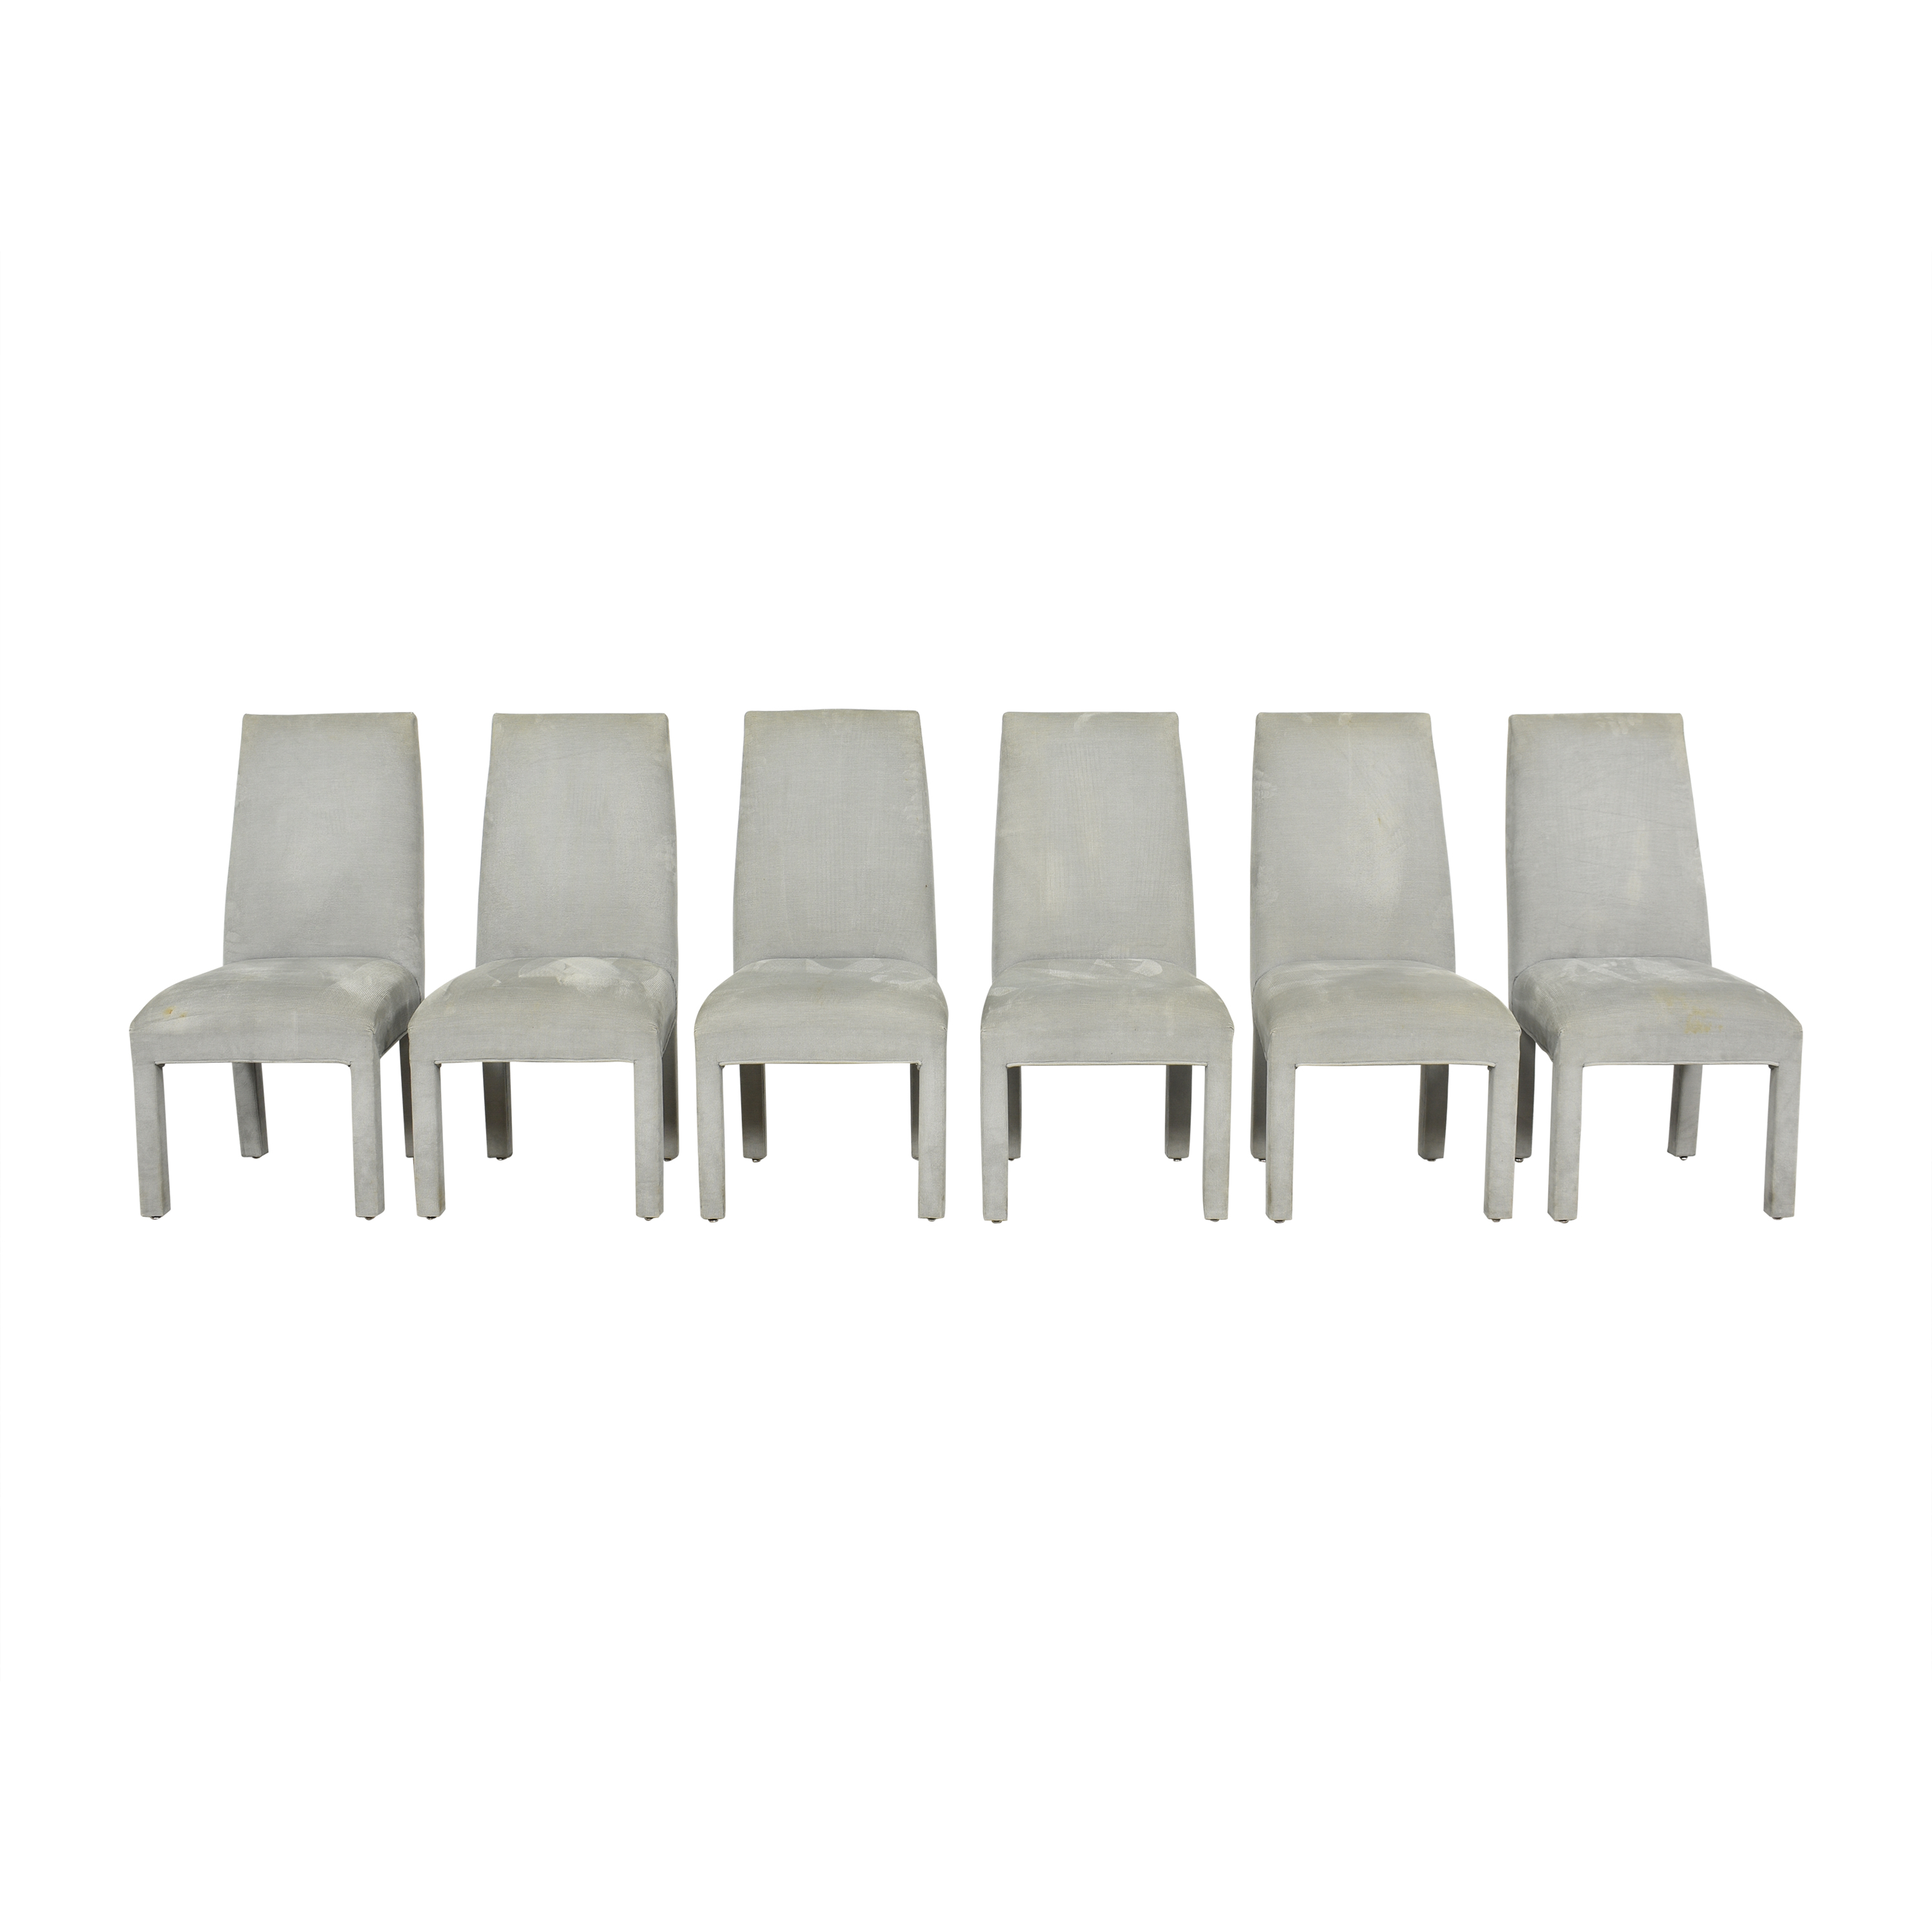 JC Penney JC Penney Modern Upholstered Dining Chairs Chairs